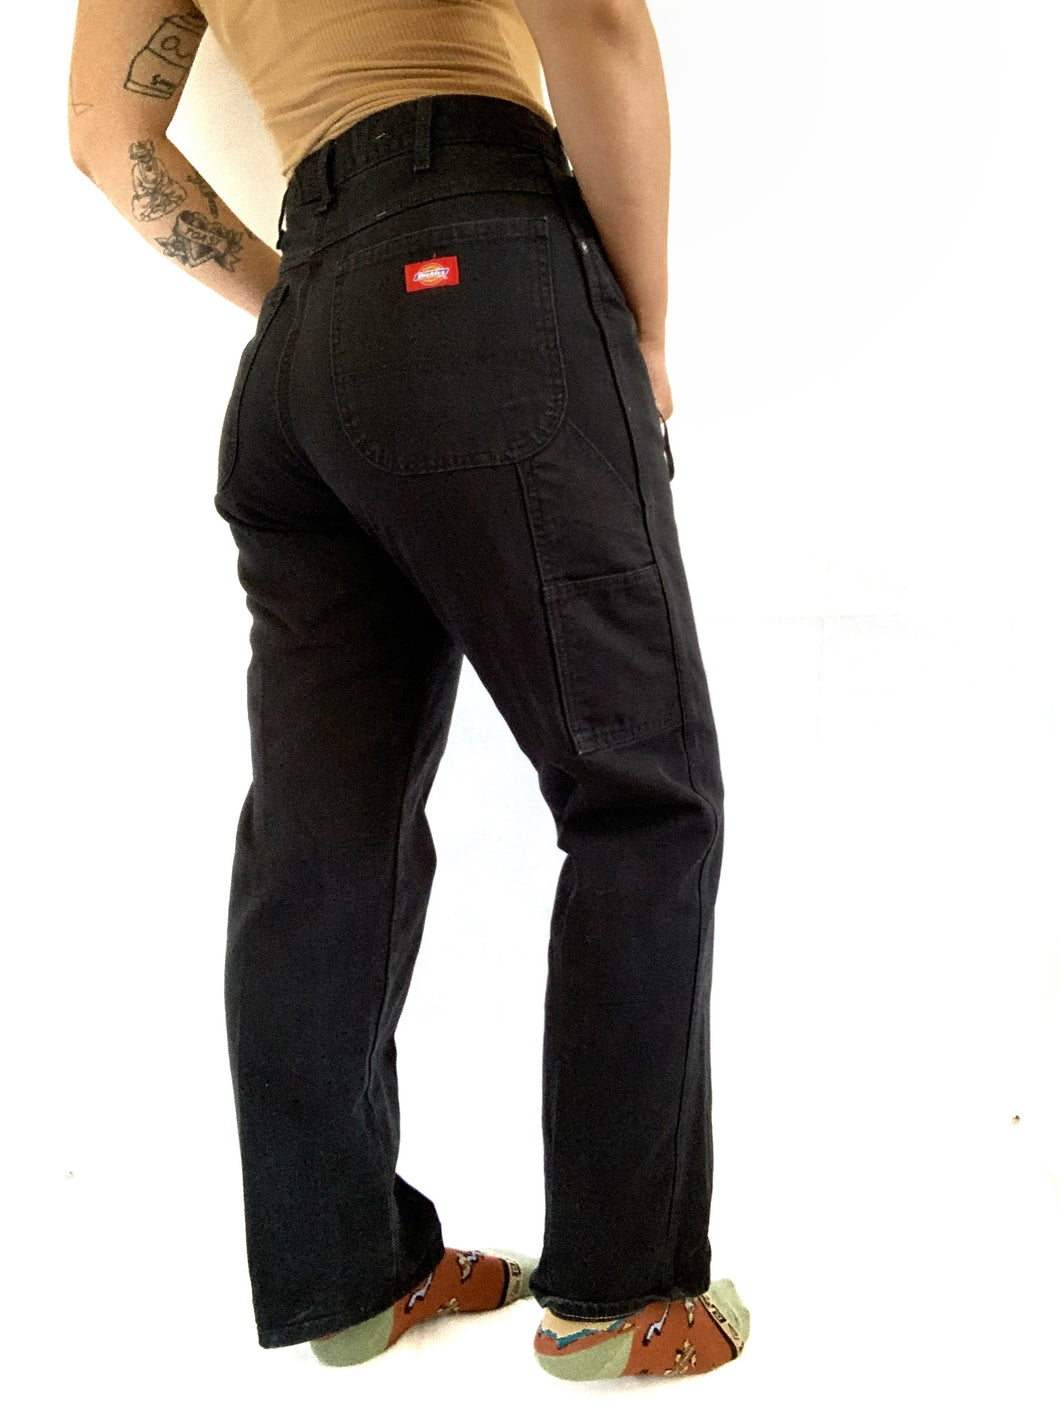 Like New Dickies Workwear Pants